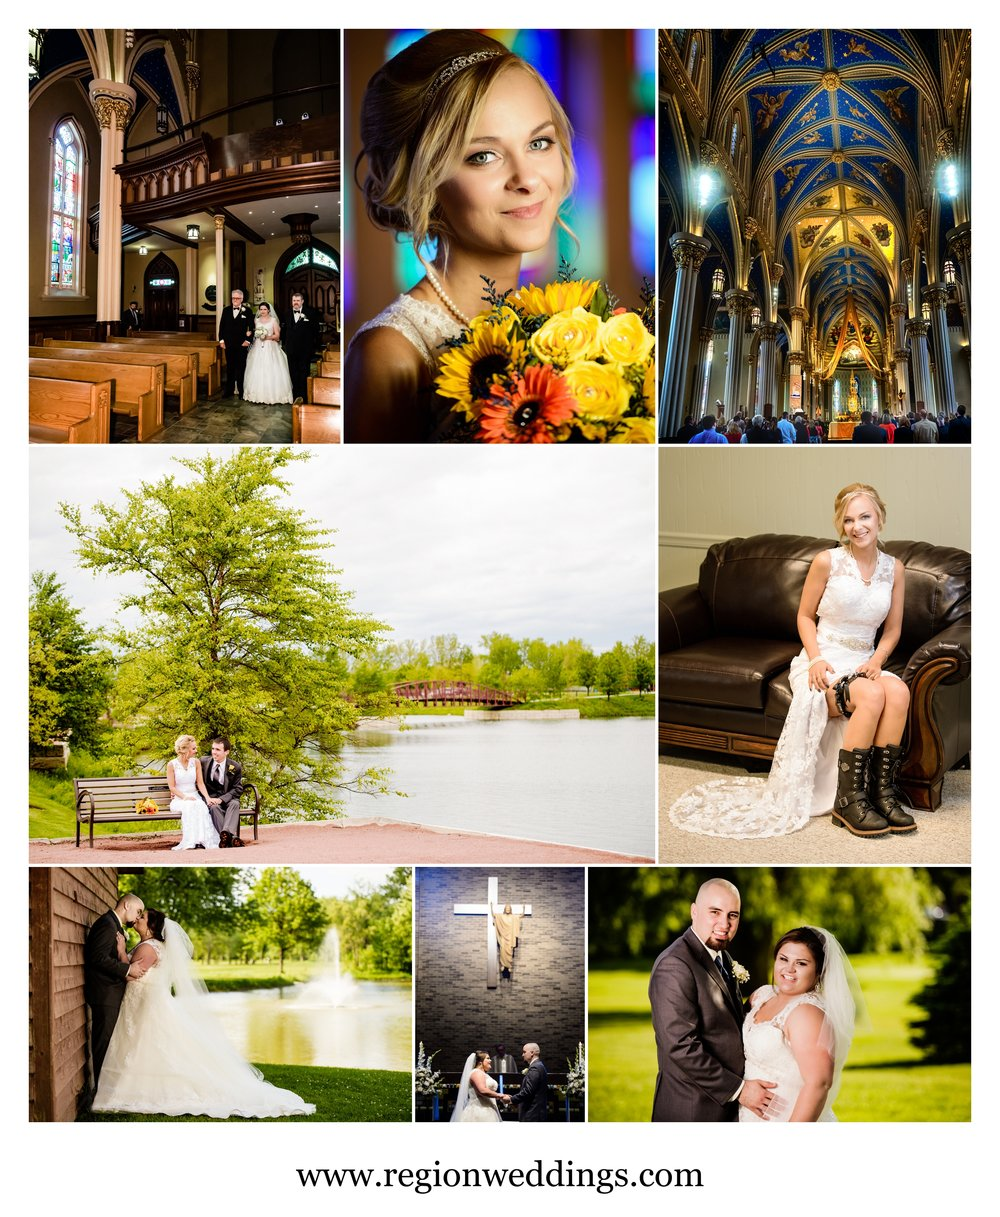 Spring weddings in Northwest Indiana in 2016.